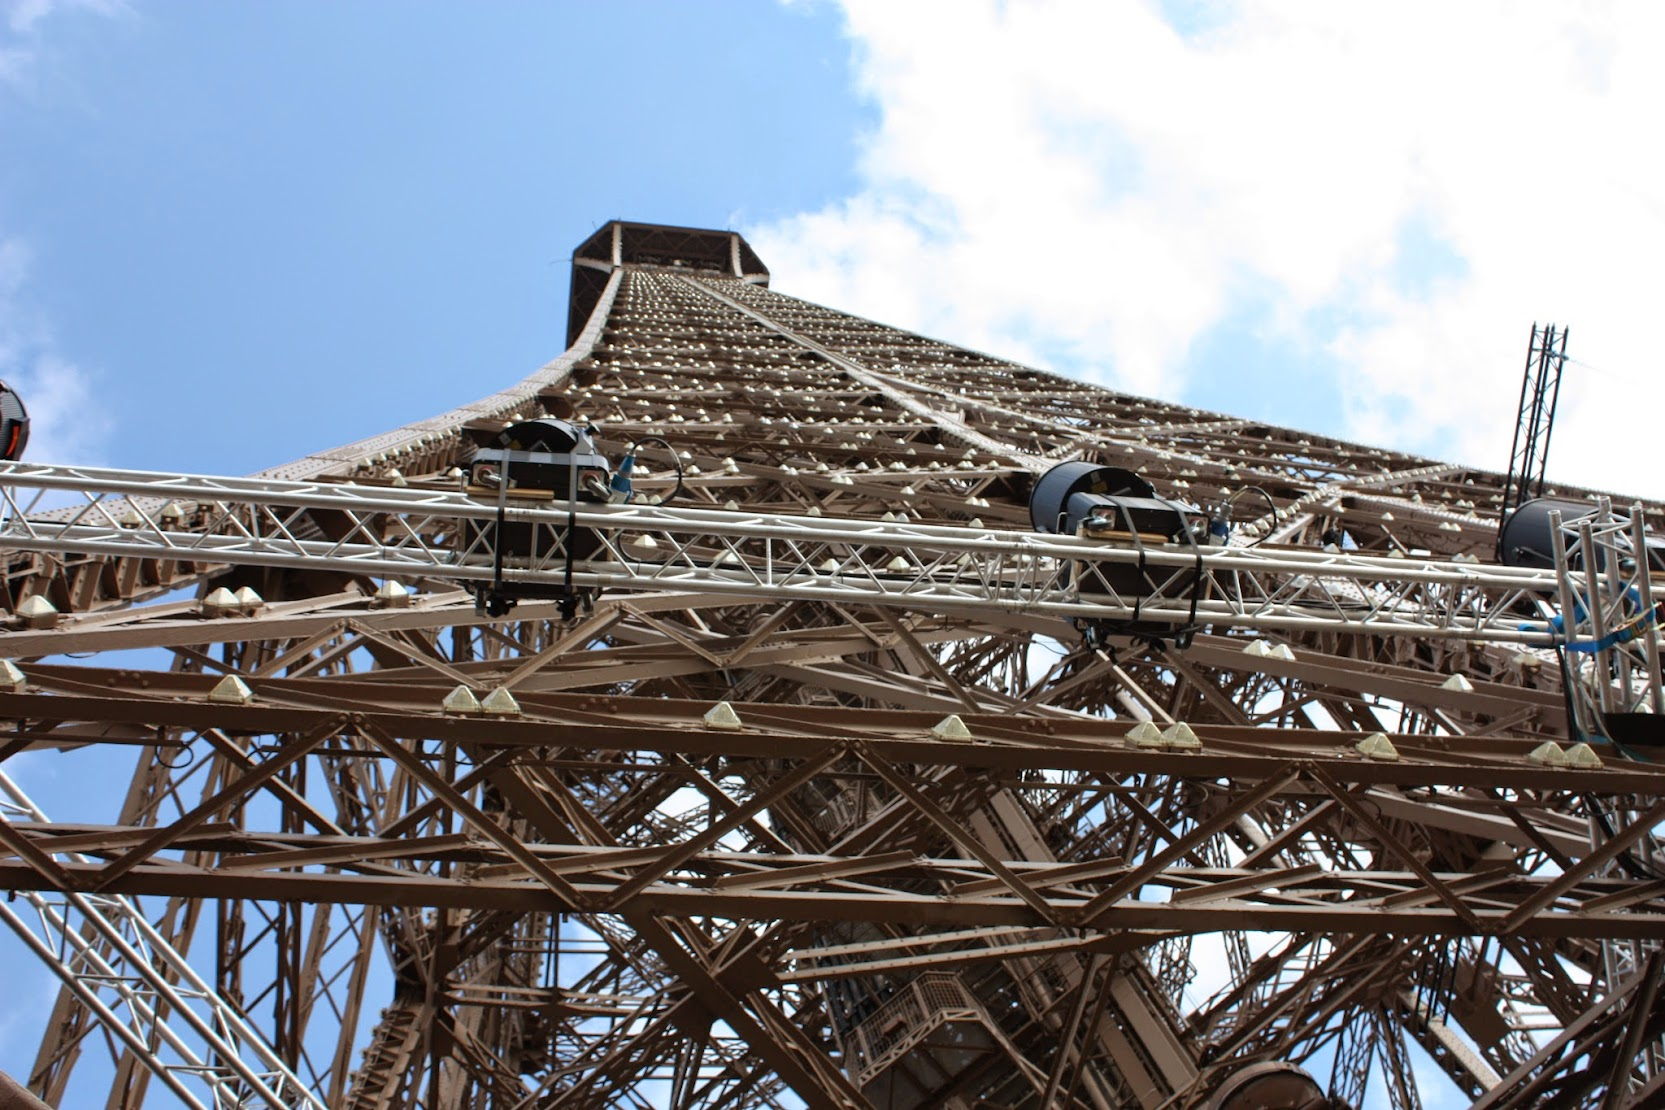 Eiffel tower- the monstrosity of steel